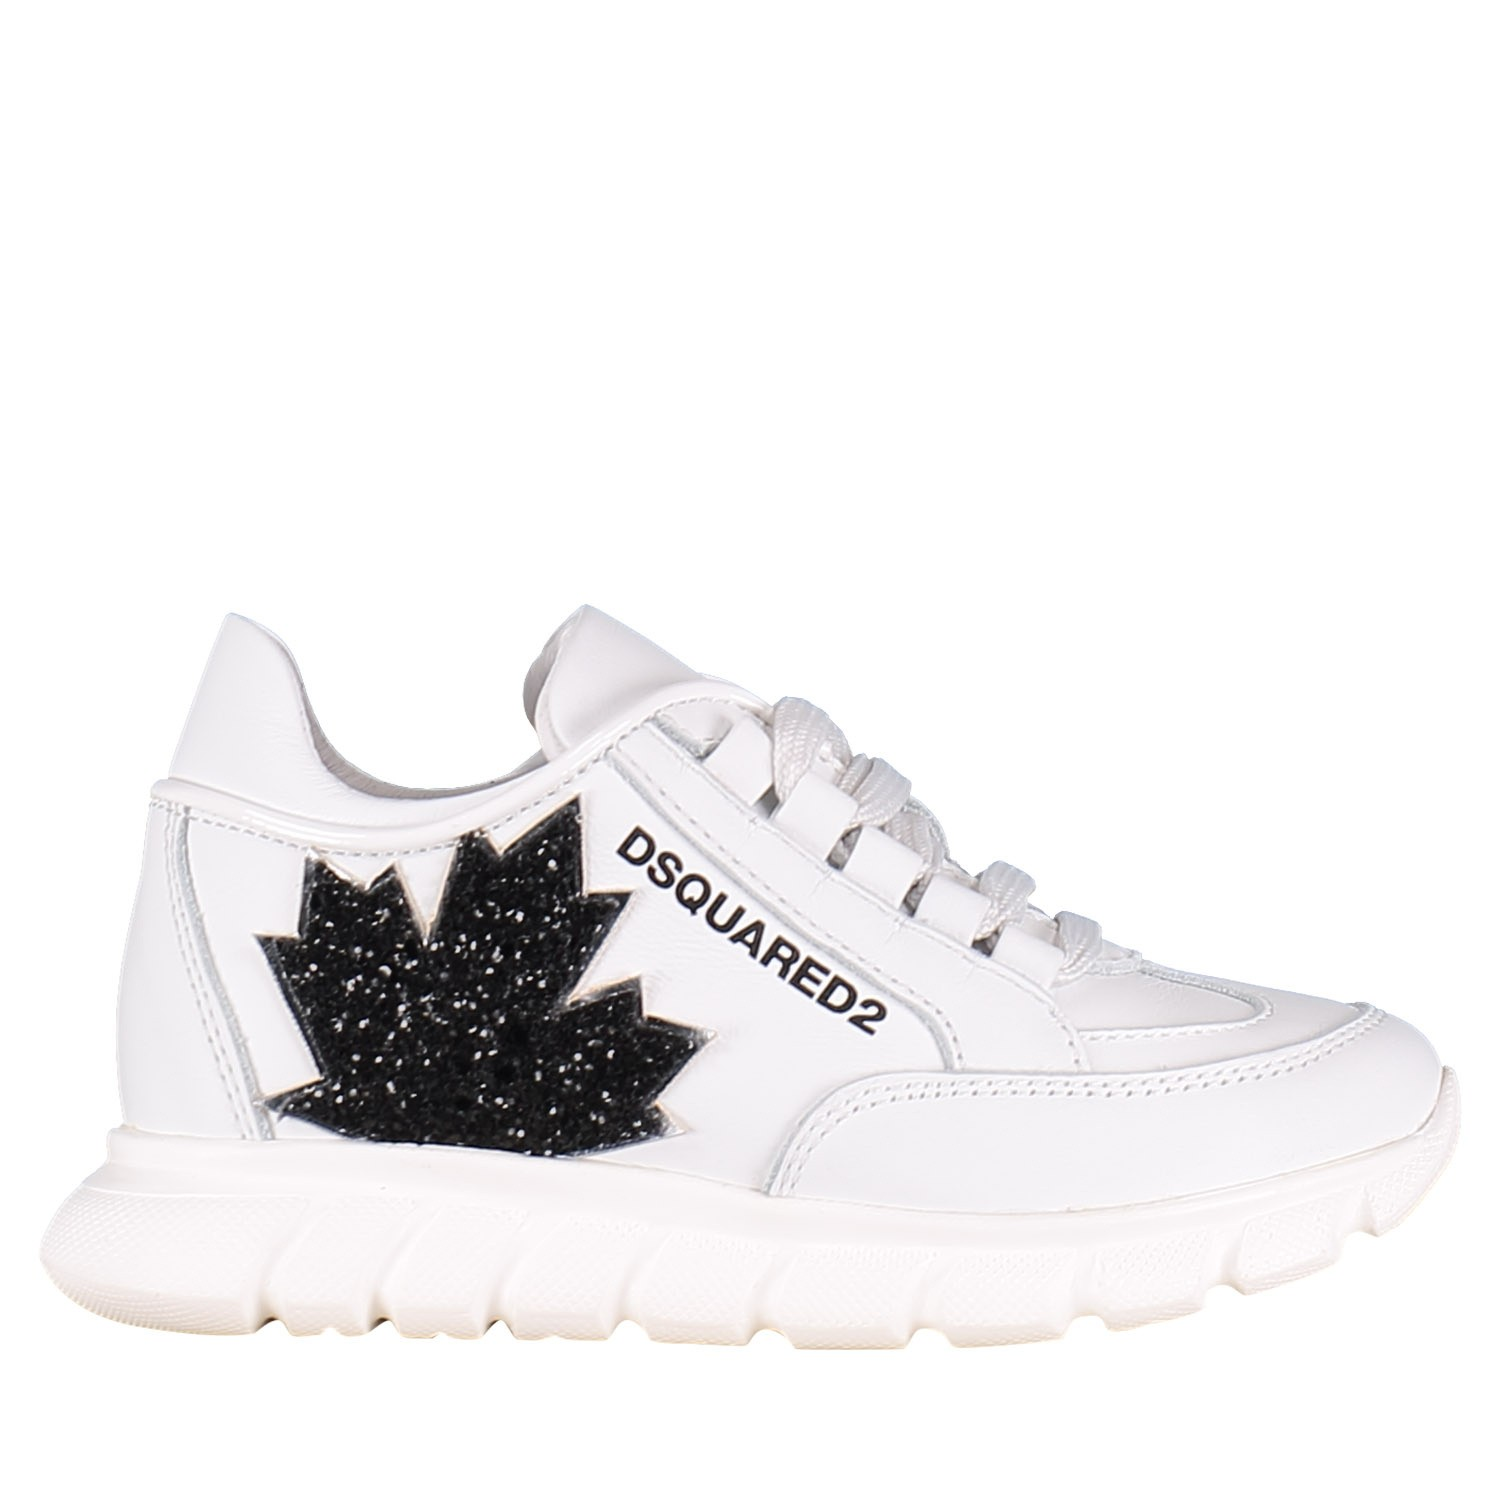 Picture of Dsquared2 59828 GLITTER kids sneakers white